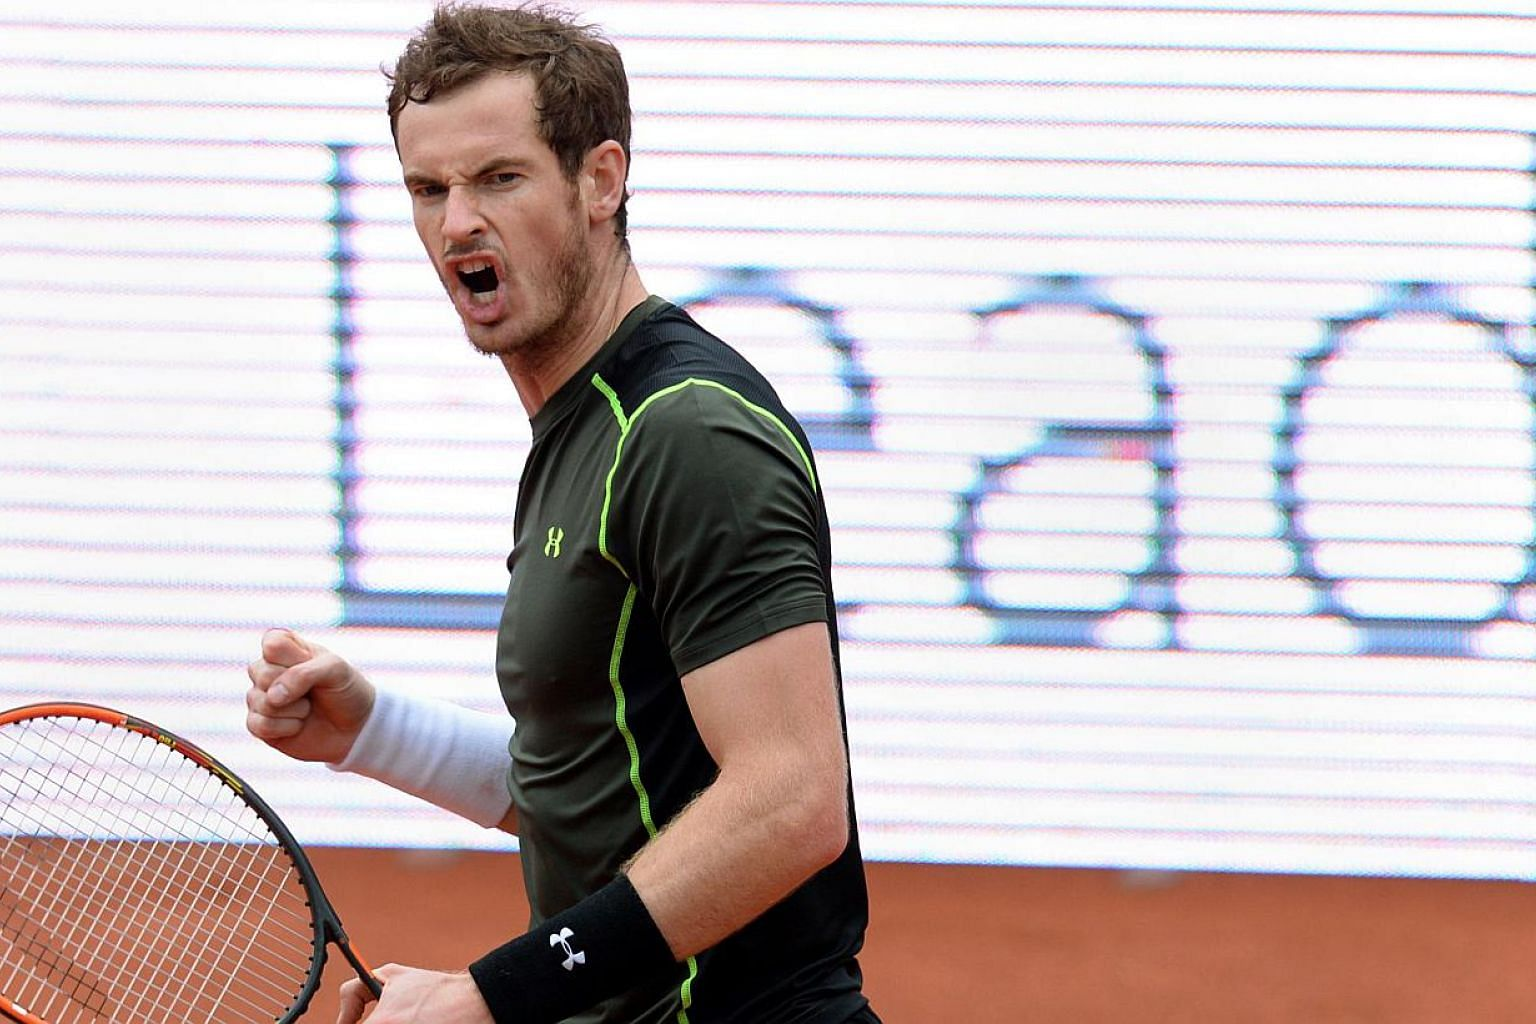 Britain's Andy Murray celebrates after his quarter-final match against Lukas Rosol of Czech Republic at the ATP Tennis Open in Munich, southern Germany, on May 2, 2015. Murray won the match 4-6, 6-3 and 6-2. -- PHOTO: AFP